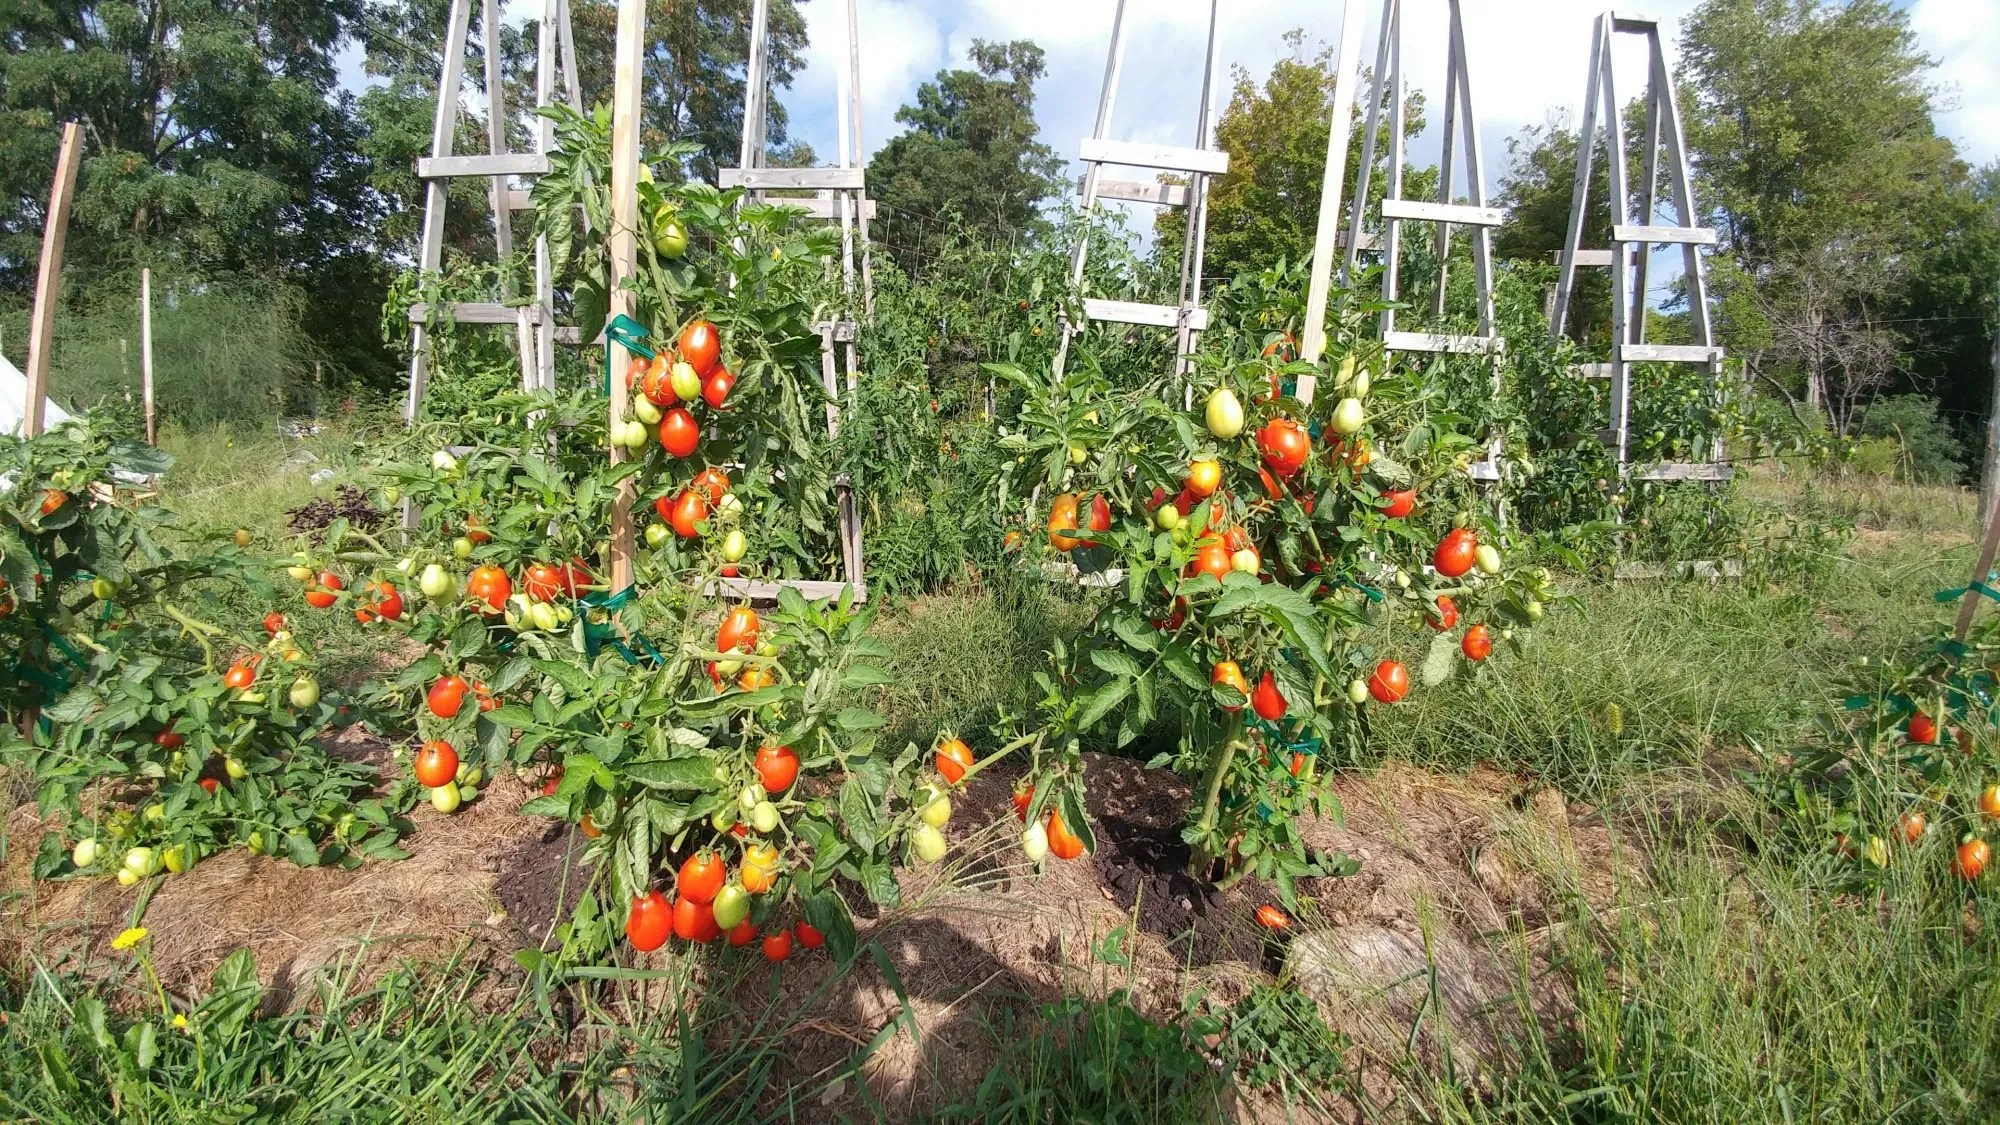 How to Support Tomatoes: Tomato Stakes vs. Tomato Cages